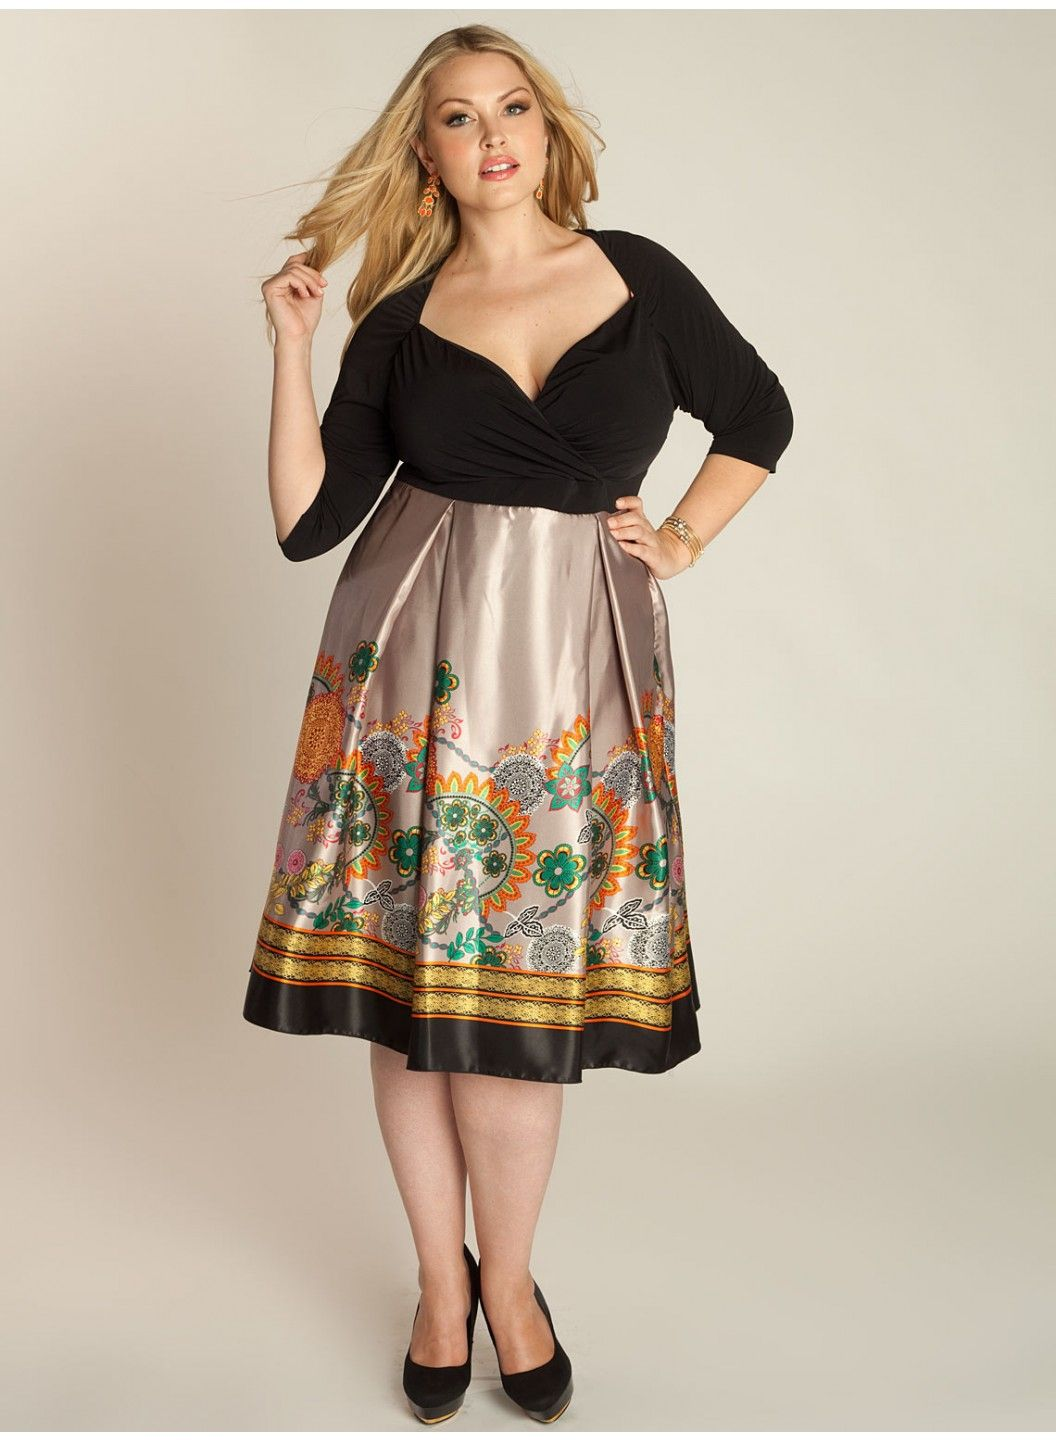 b528b02c3dae Leah Dress. Perfect for complimenting the fuller bust, big bust, big  breasted or curvy woman.